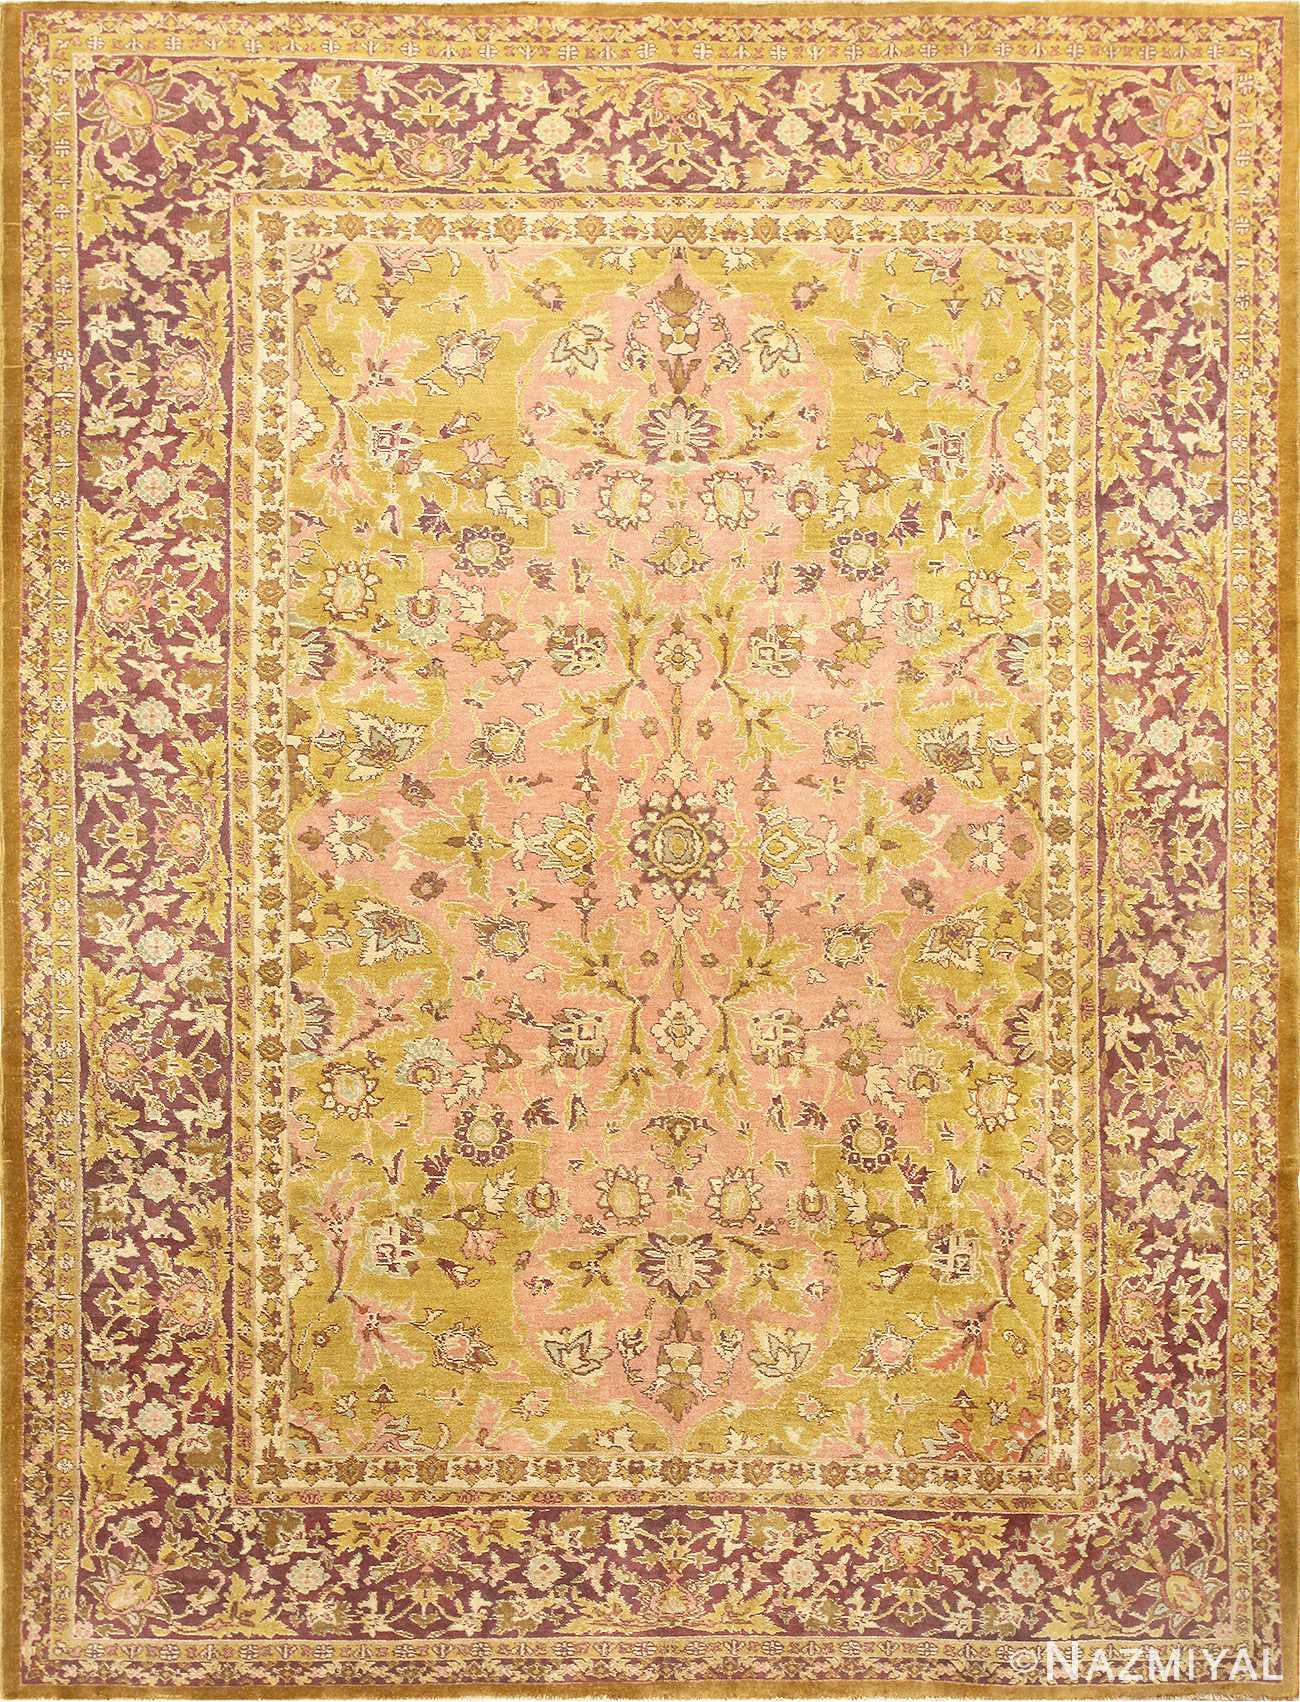 Polonaise Design Late 19th Century Antique Indian Agra Rug 48840 Nazmiyal